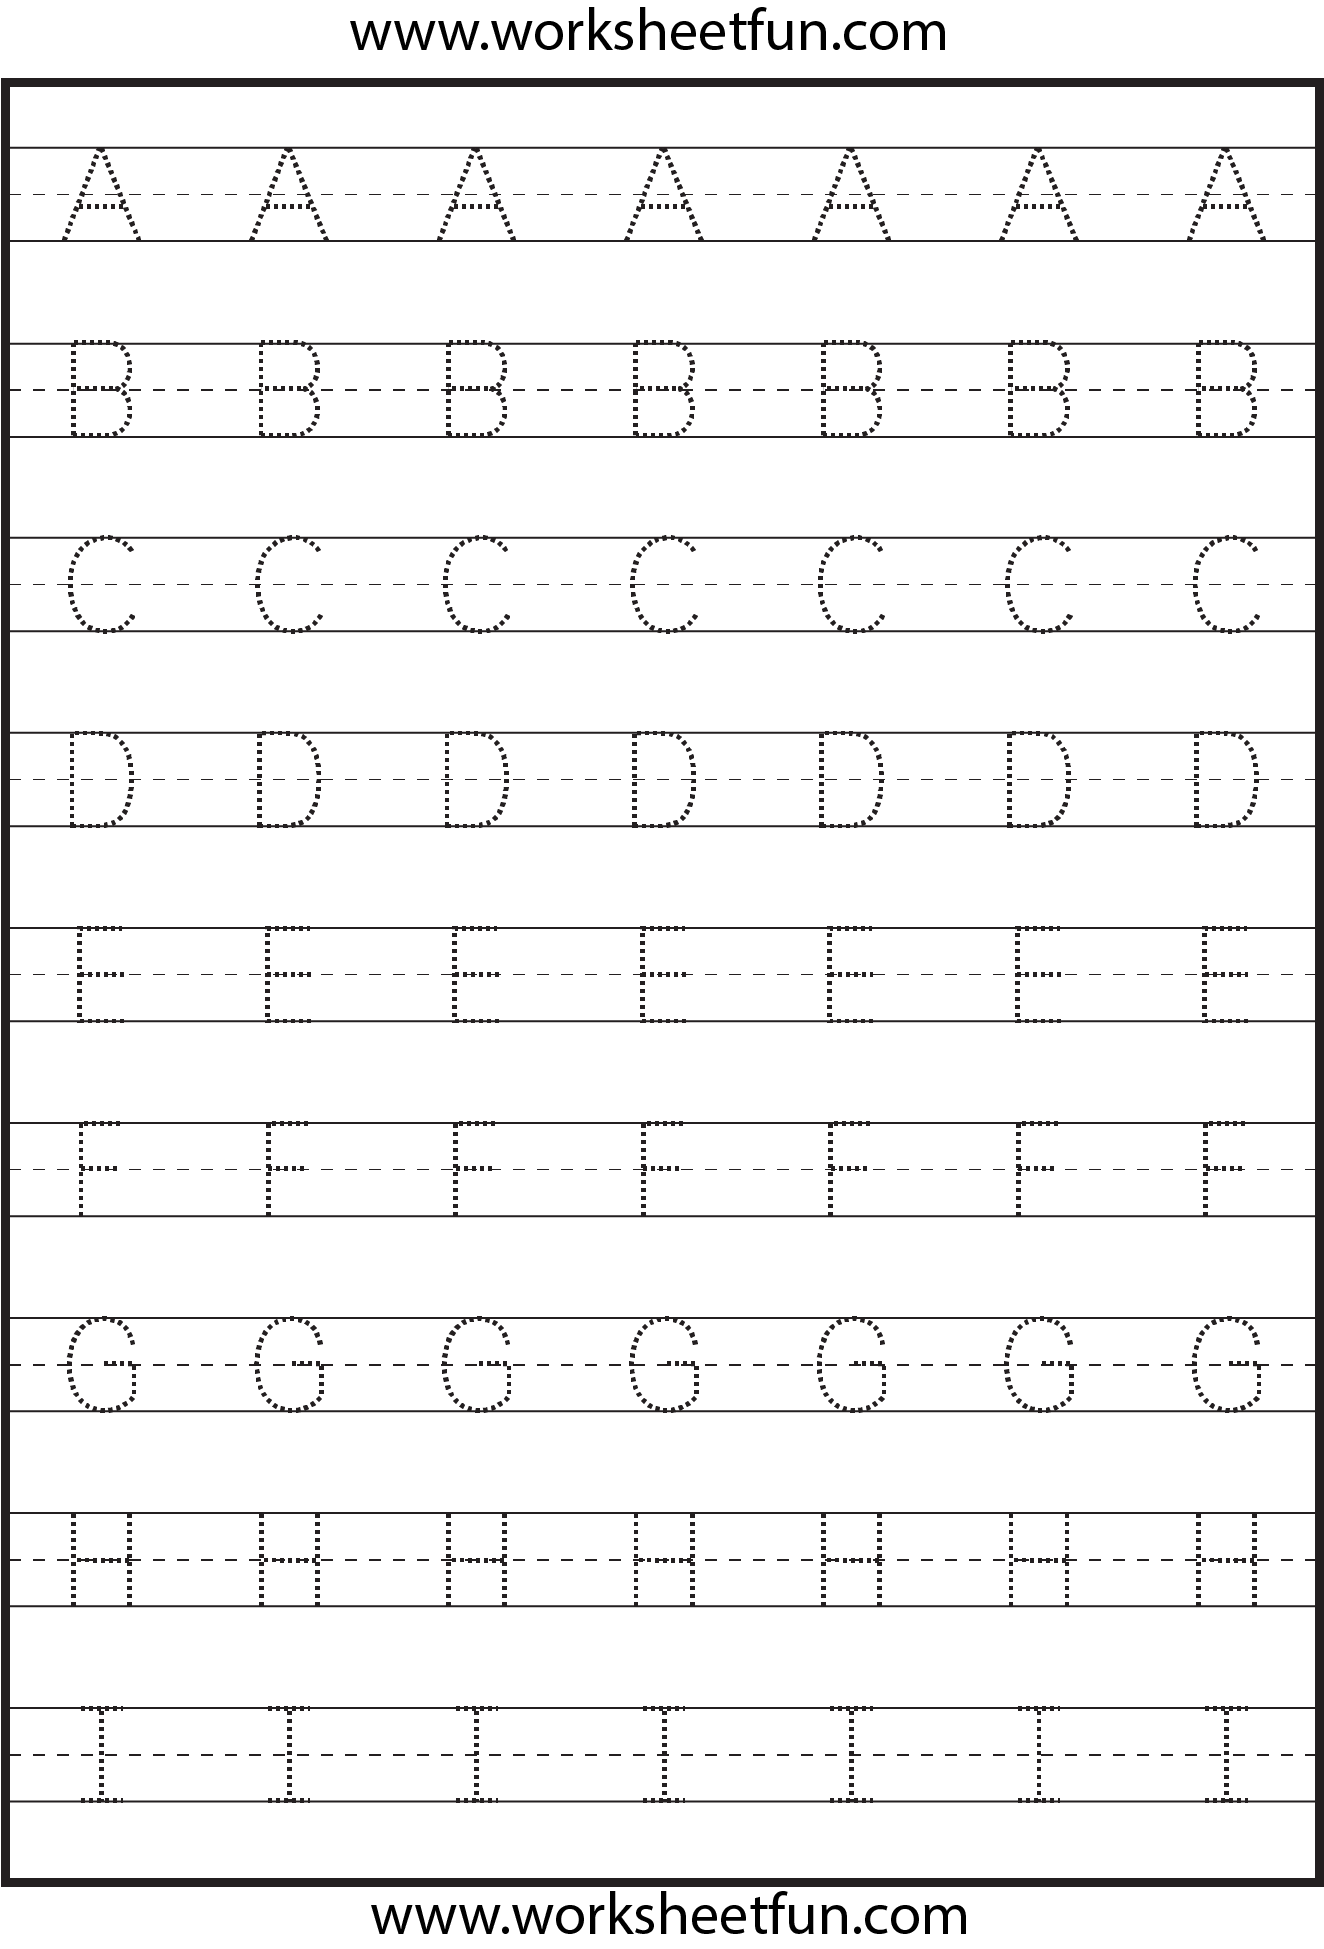 Worksheets Alphabet Tracing A  Z 8 best images of tracing letters a z printables printable capital letter worksheet